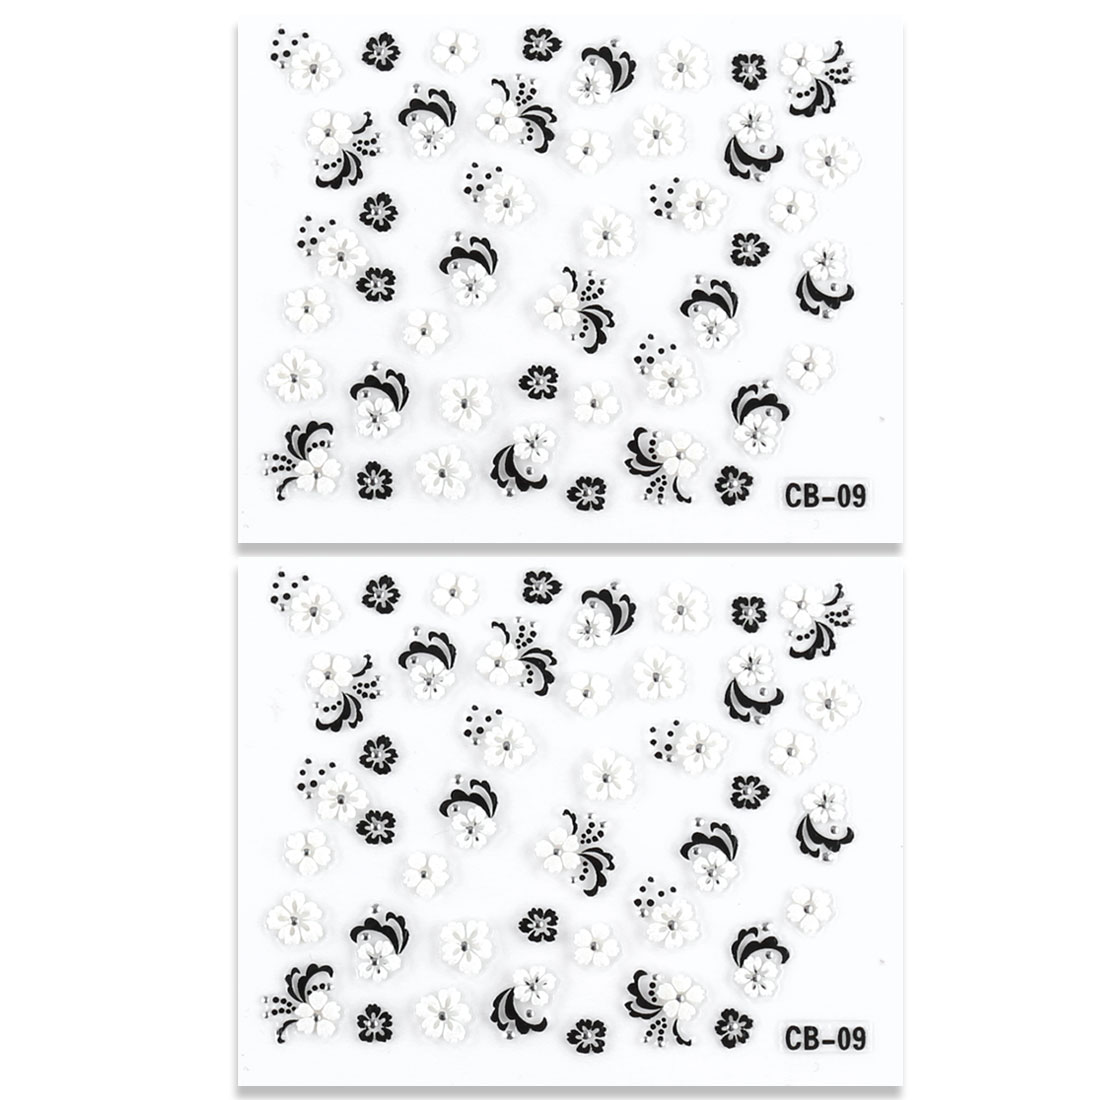 White Black 3D Flower Design Nail Art Fingernail Sticker Sheet 2 Pcs